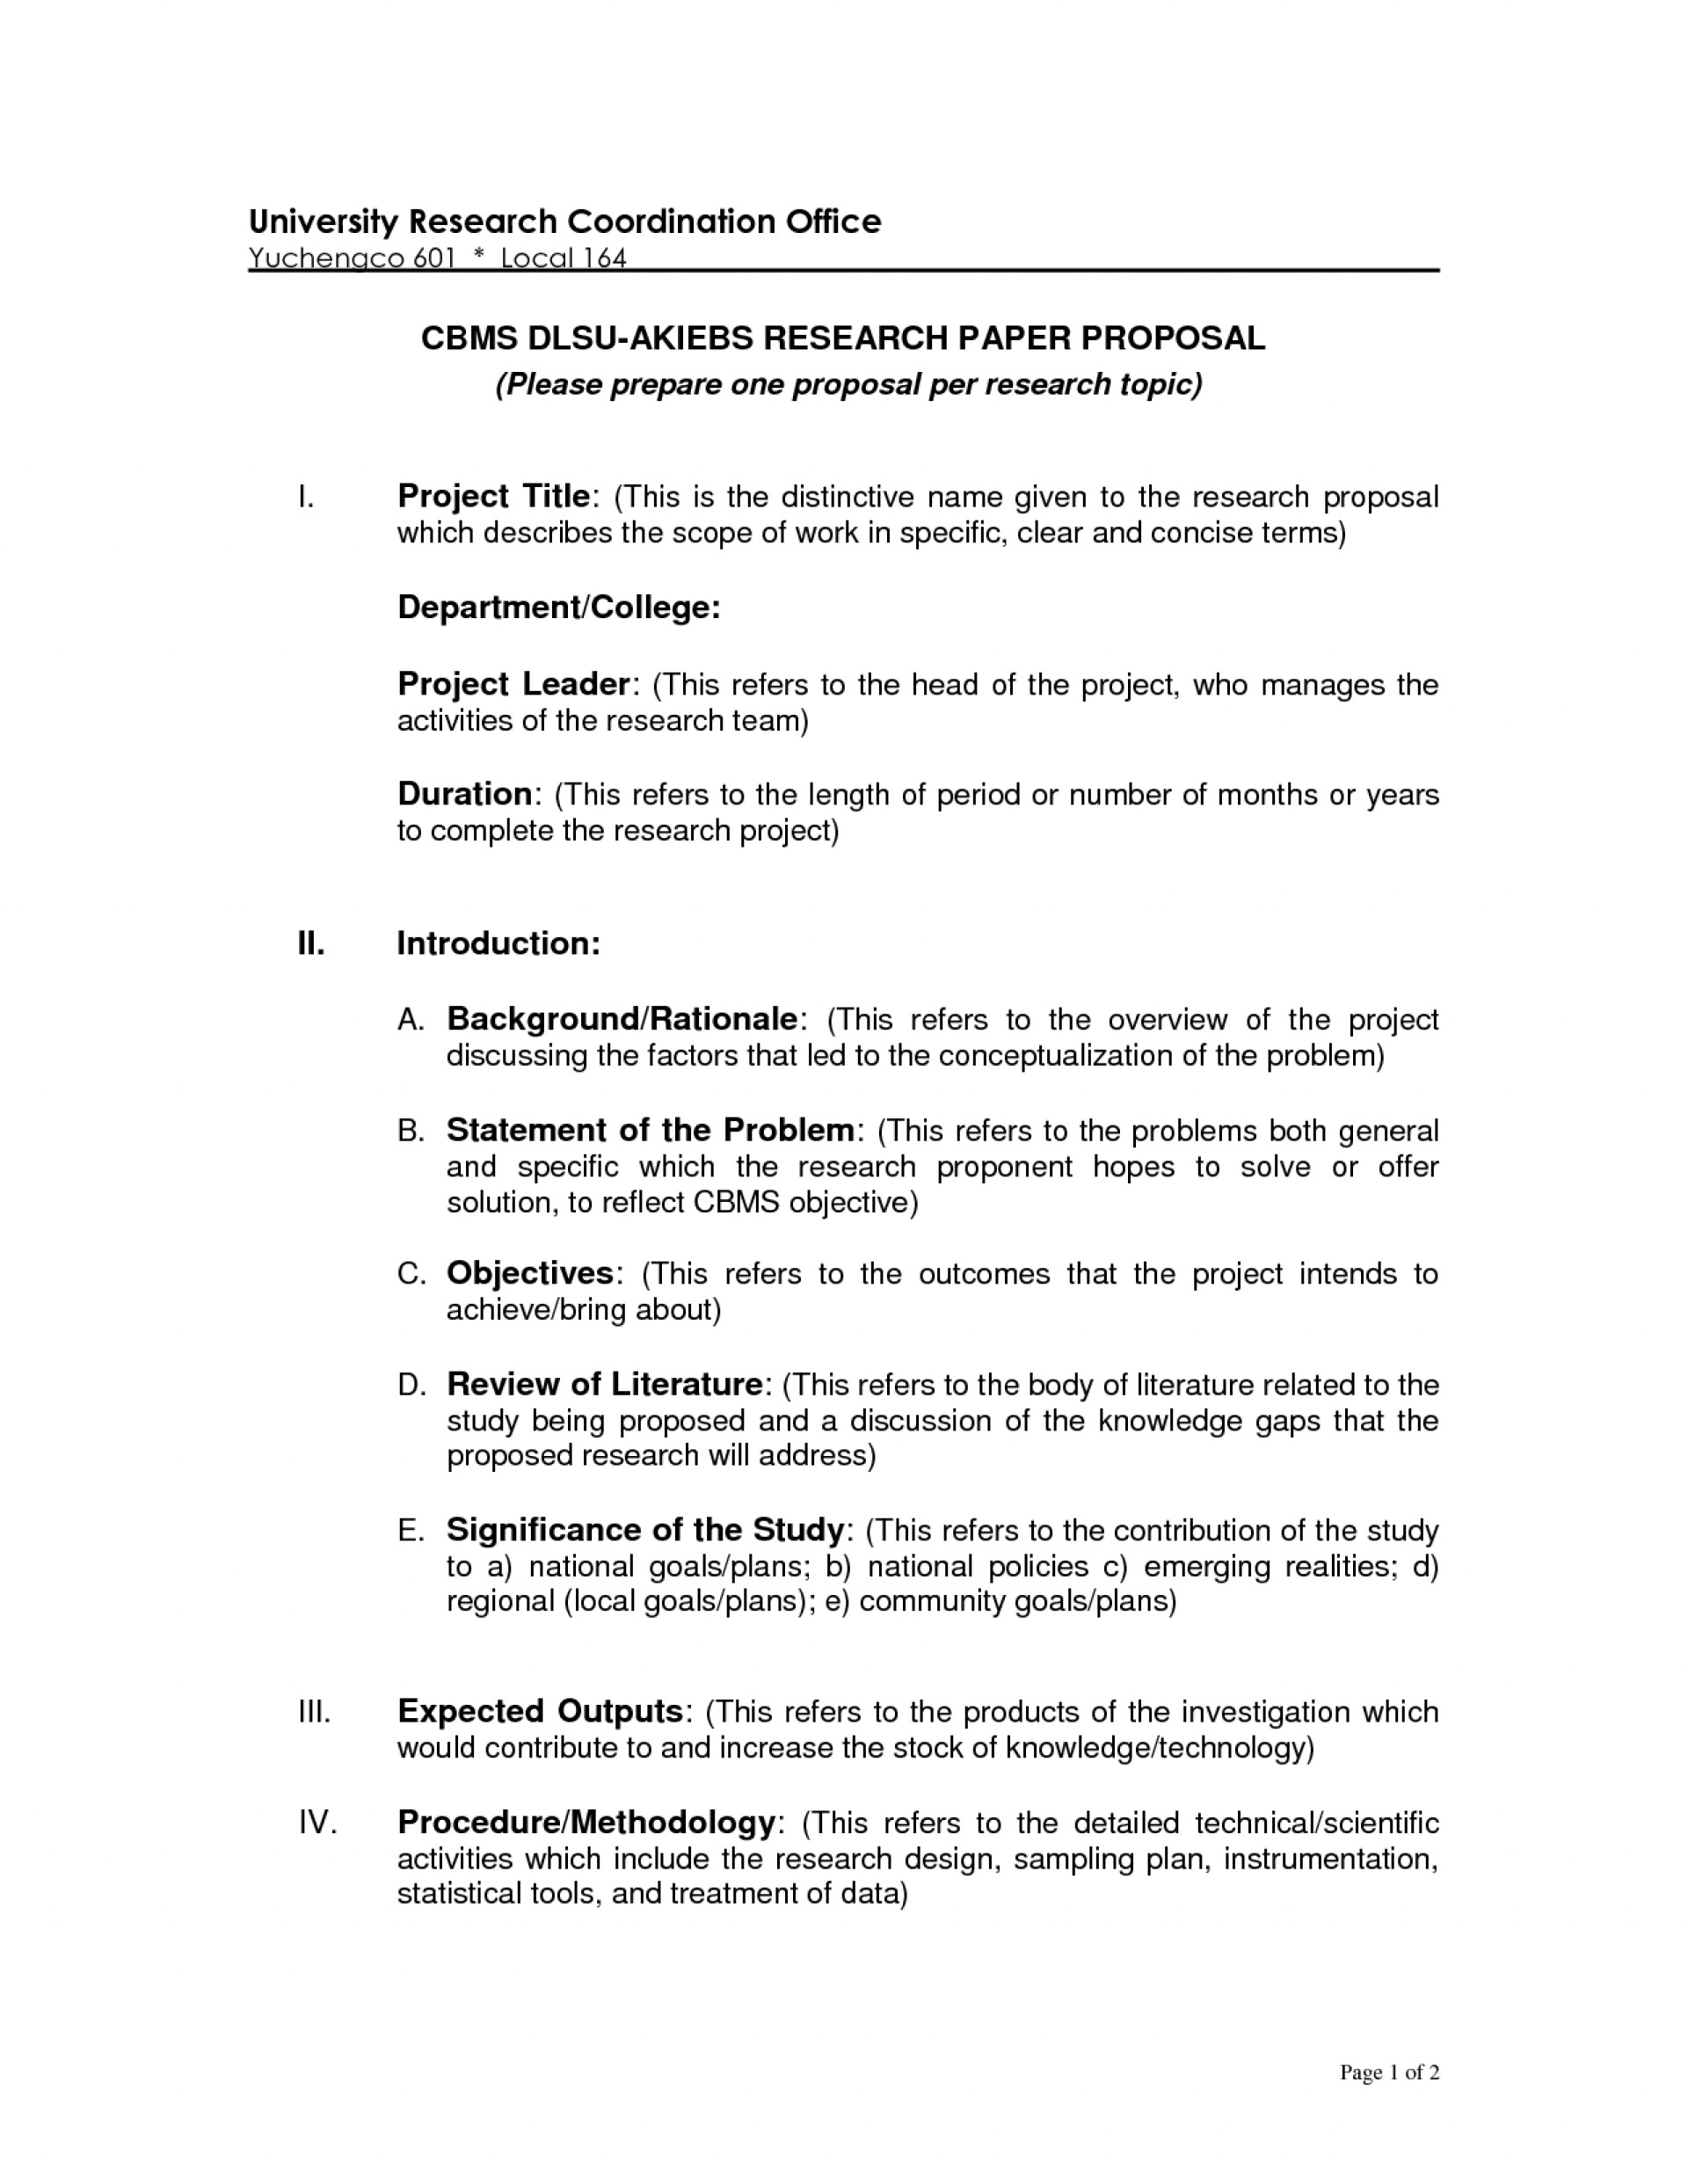 003 How To Write Topicosal For Research Paper Ideas Of Phd Format Example Essay Sample Appendix Mla Staggering A Topic Proposal Writing 1920